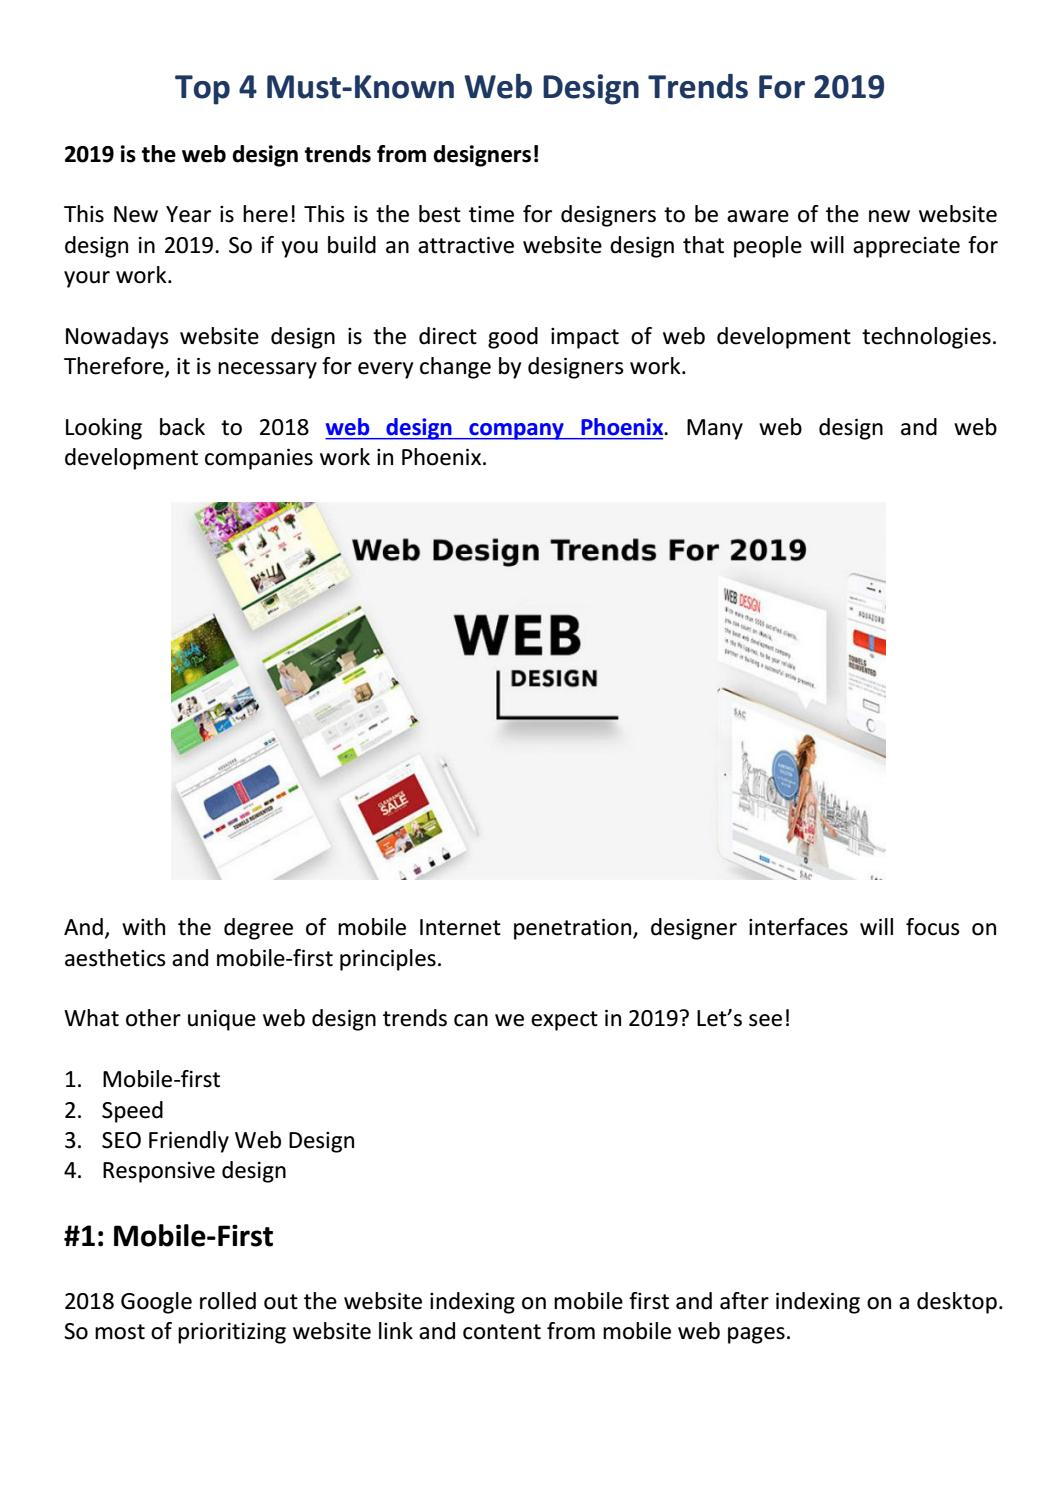 Top 4 Must Known Web Design Trends For 2019 By John Issuu